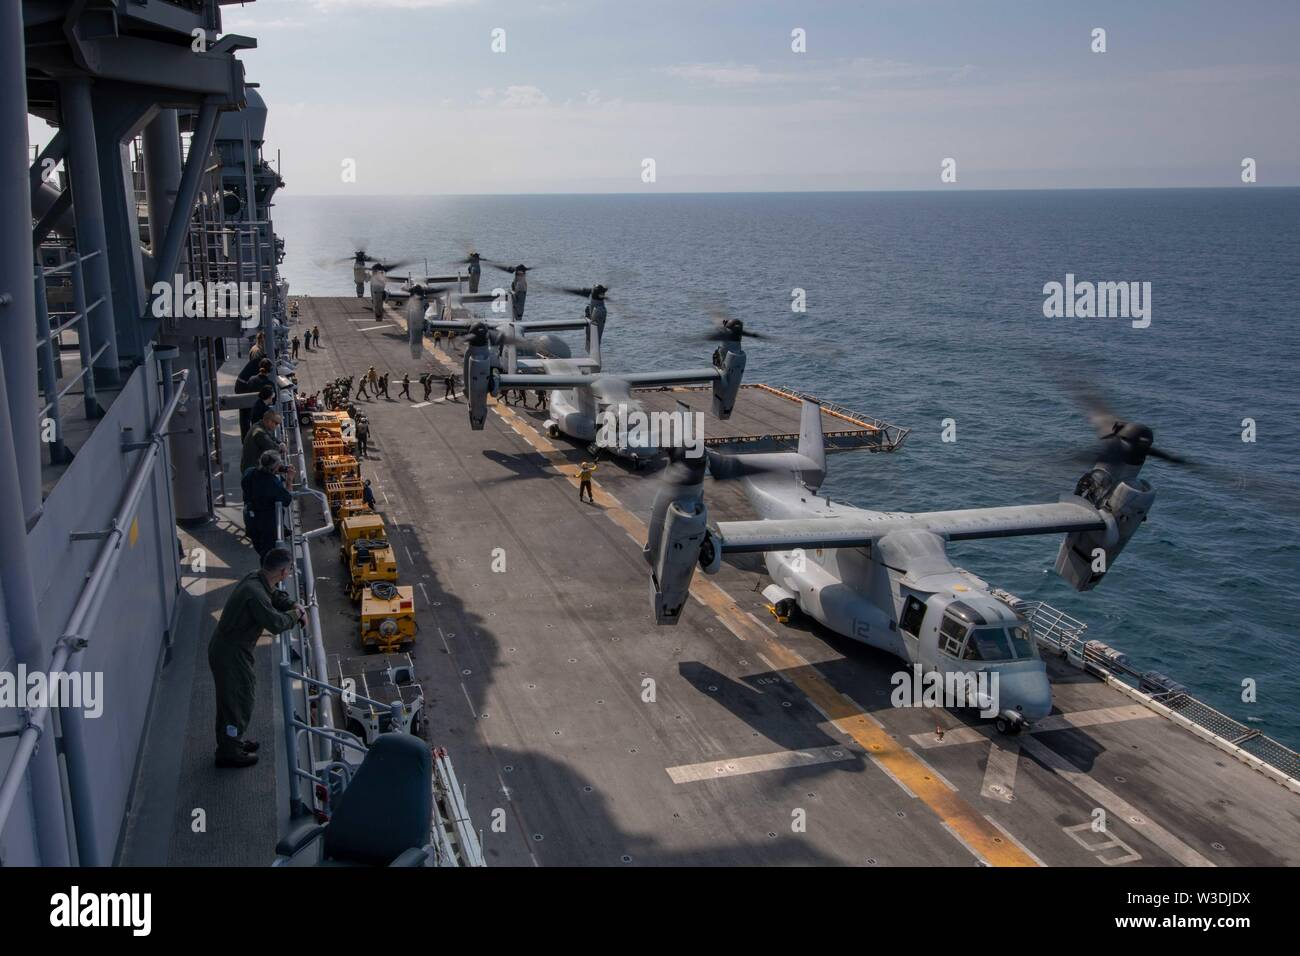 190714-N-IK871-1009 ATLANTIC OCEAN (July 14, 2019) Marines embark a MV-22B Osprey on the flight deck aboard the Wasp-class amphibious assault ship USS Kearsarge (LHD 3). Kearsarge is the flagship for the Kearsarge Amphibious Ready Group. The Kearsarge ARG is deployed in support of maritime security operations, crisis response and theater security cooperation, while providing a forward naval presence. (U.S. Navy photo by Mass Communication Specialist 3rd Class Nicholas R. Boris/Released) - Stock Image